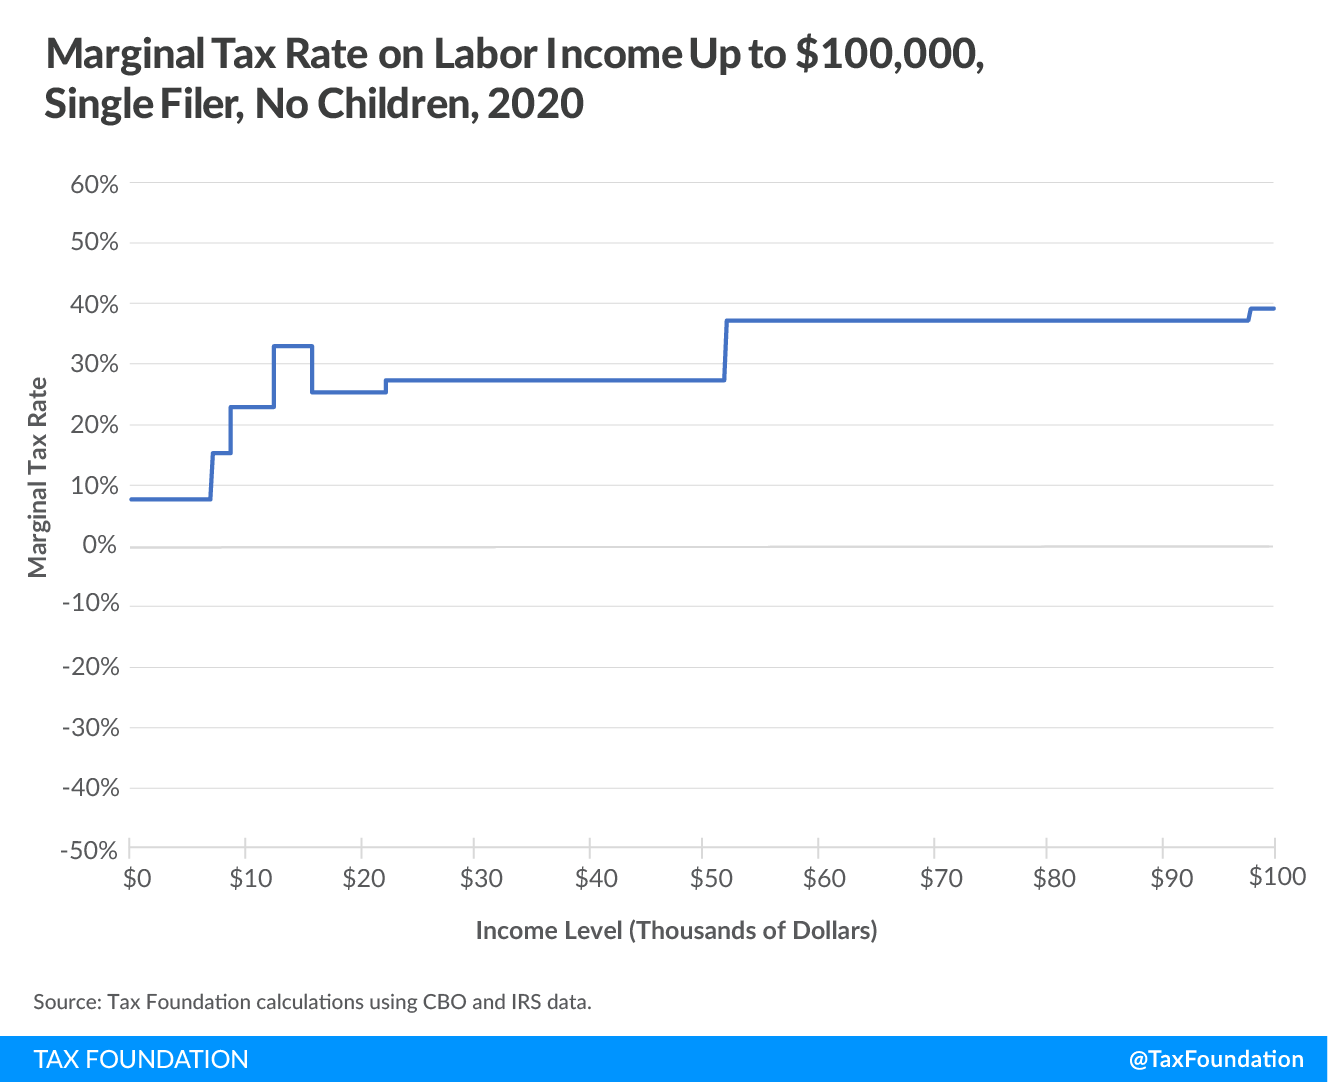 Marginal tax rate on labor income up to $100,000, single filer, no children 2020, Marginal Tax Rates on Labor Income in the U.S. After the Tax Cuts and Jobs Act